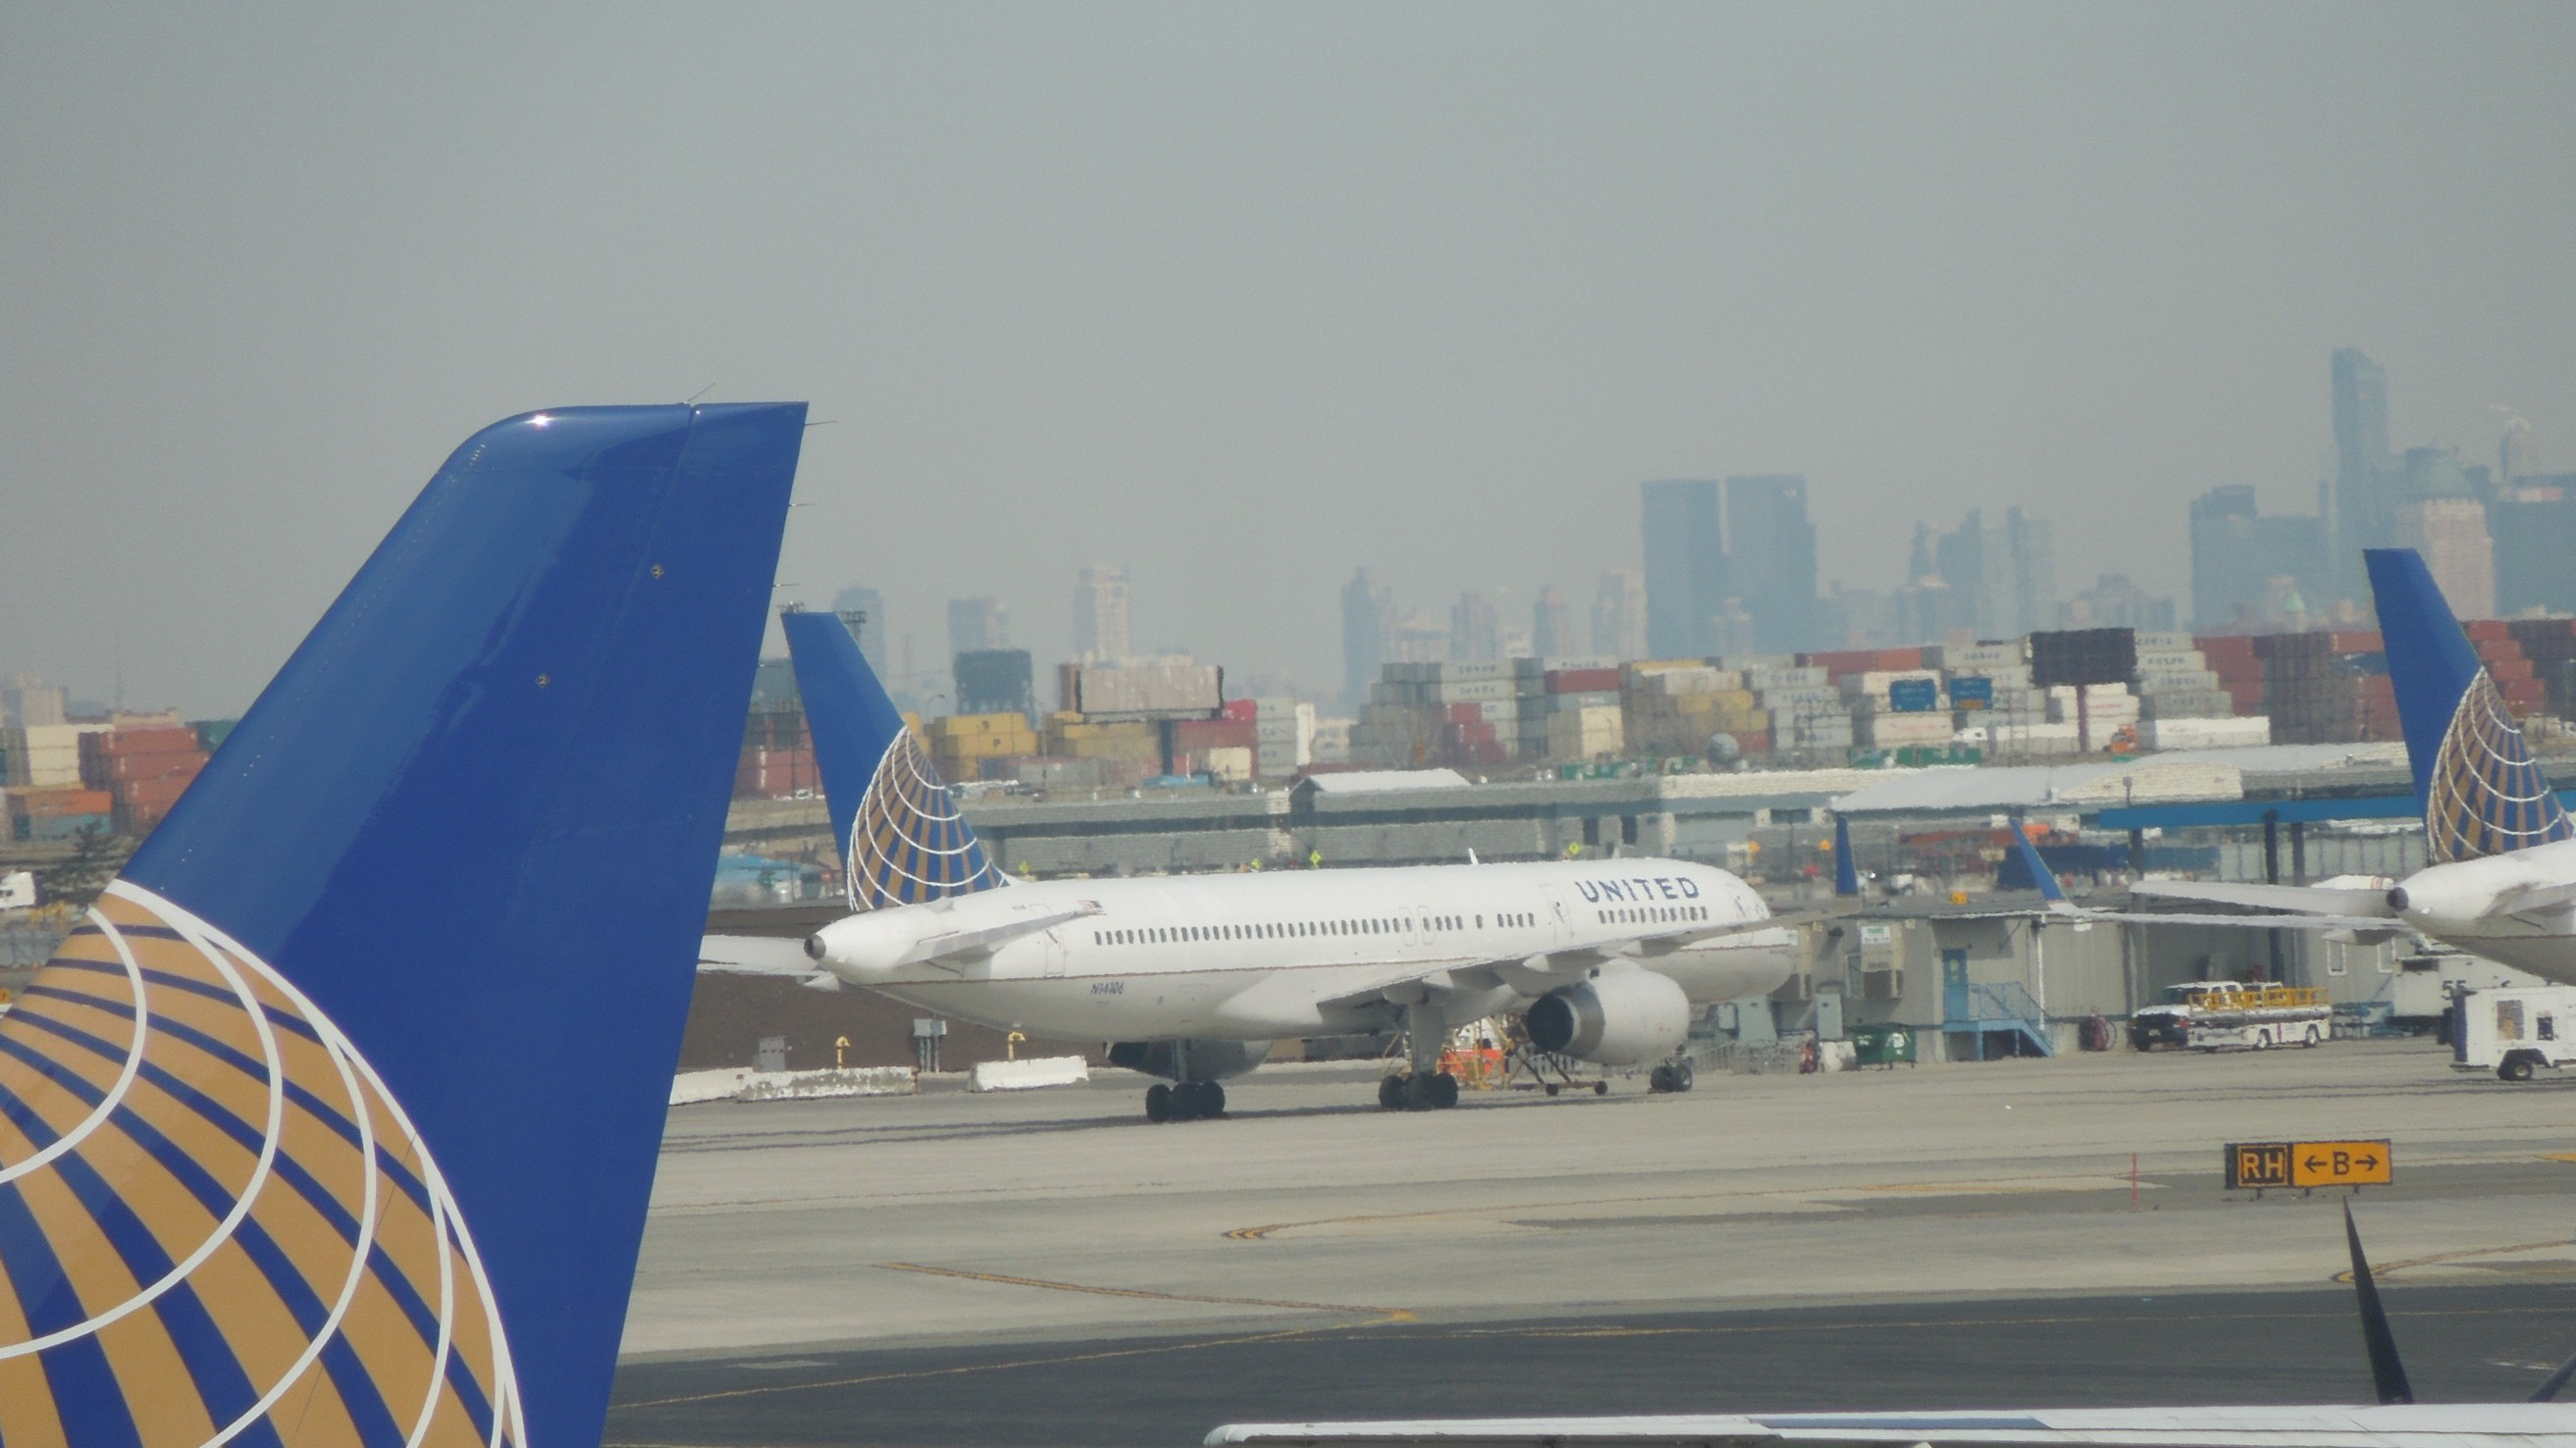 United Airlines made me ABANDON my mobility device at the gate